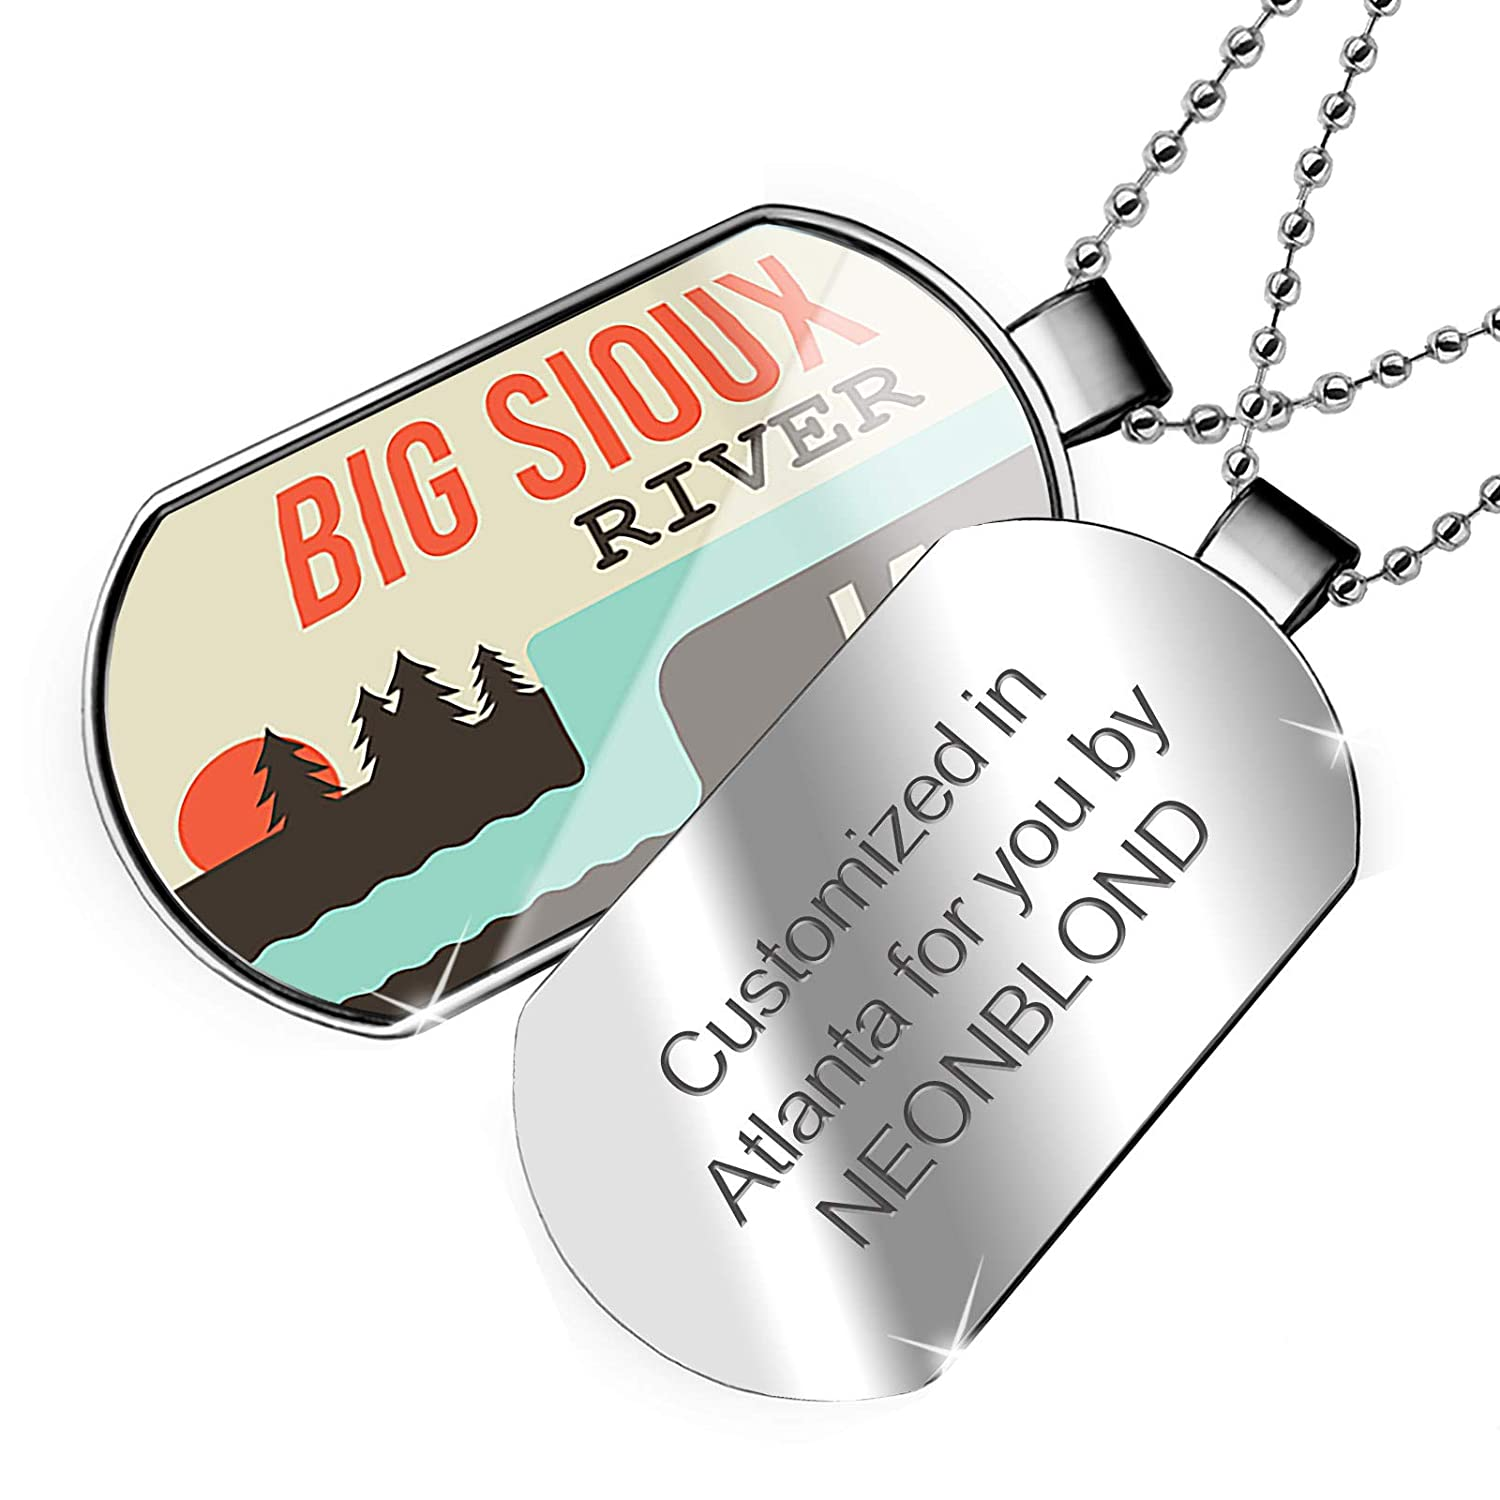 Iowa Dogtag Necklace NEONBLOND Personalized Name Engraved USA Rivers Big Sioux River